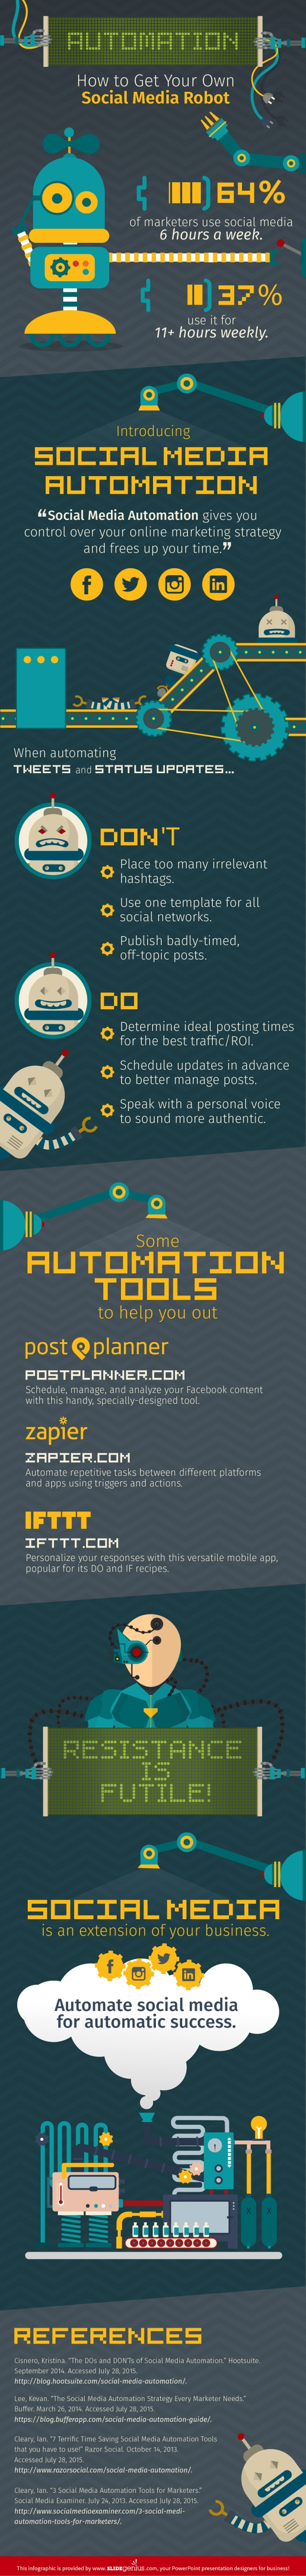 Social Media Automation 6 Dos & Don'ts Plus 3 Tools for Success